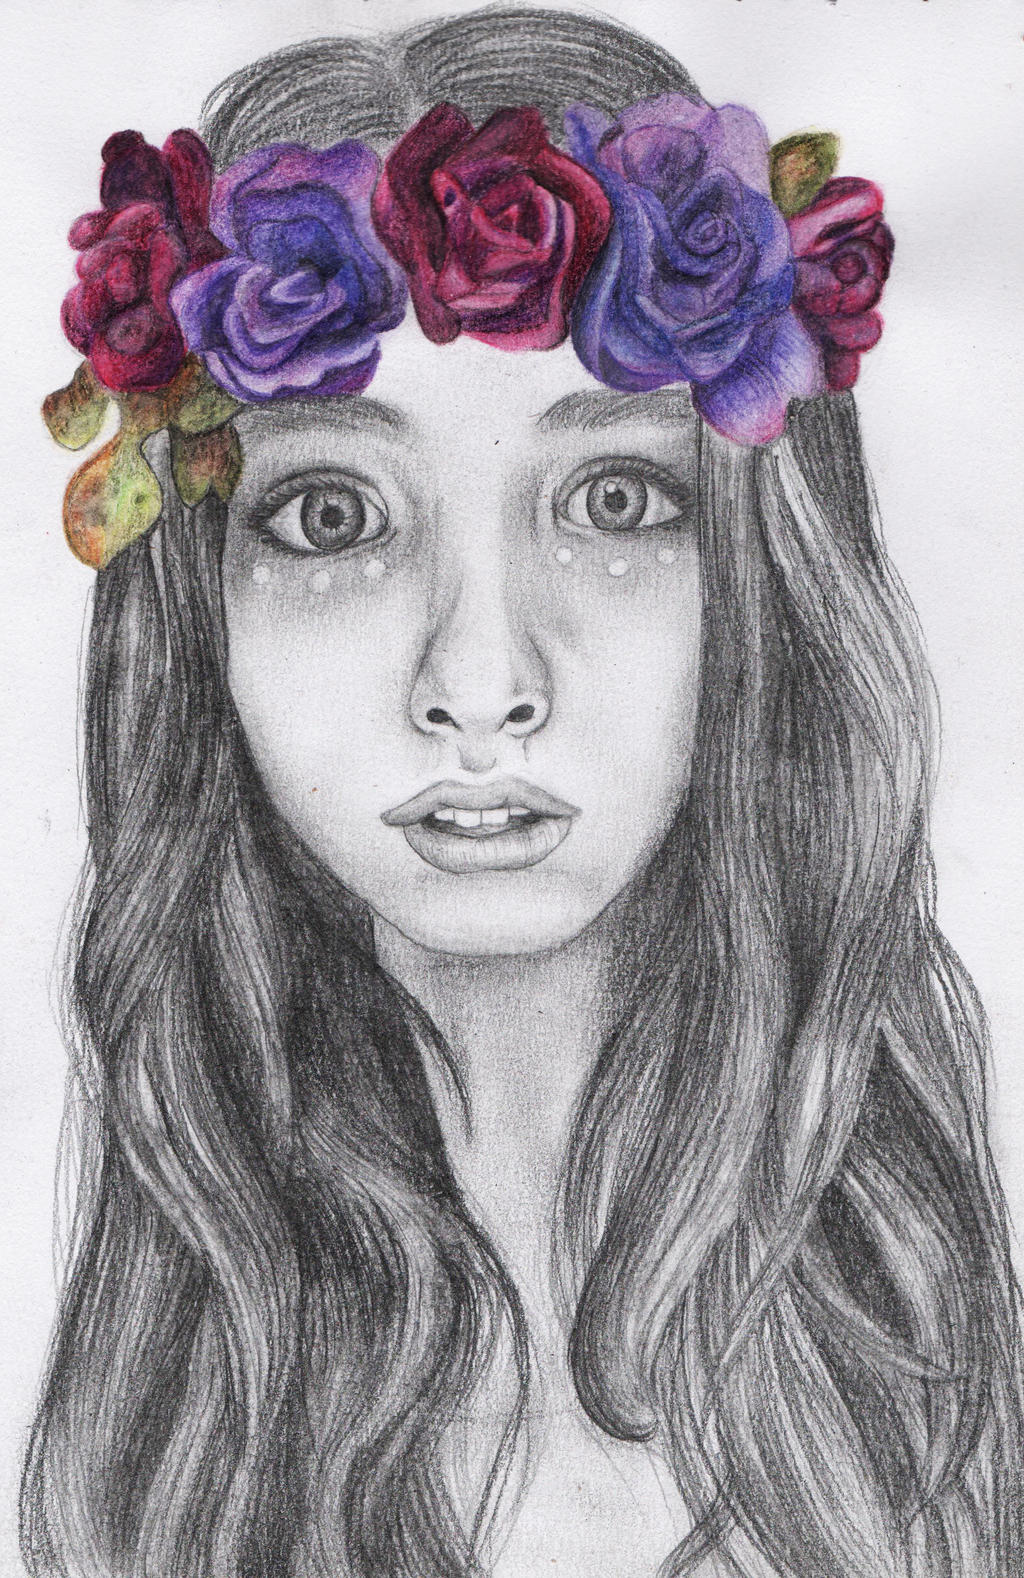 Flower Crown by bethymelly on DeviantArt